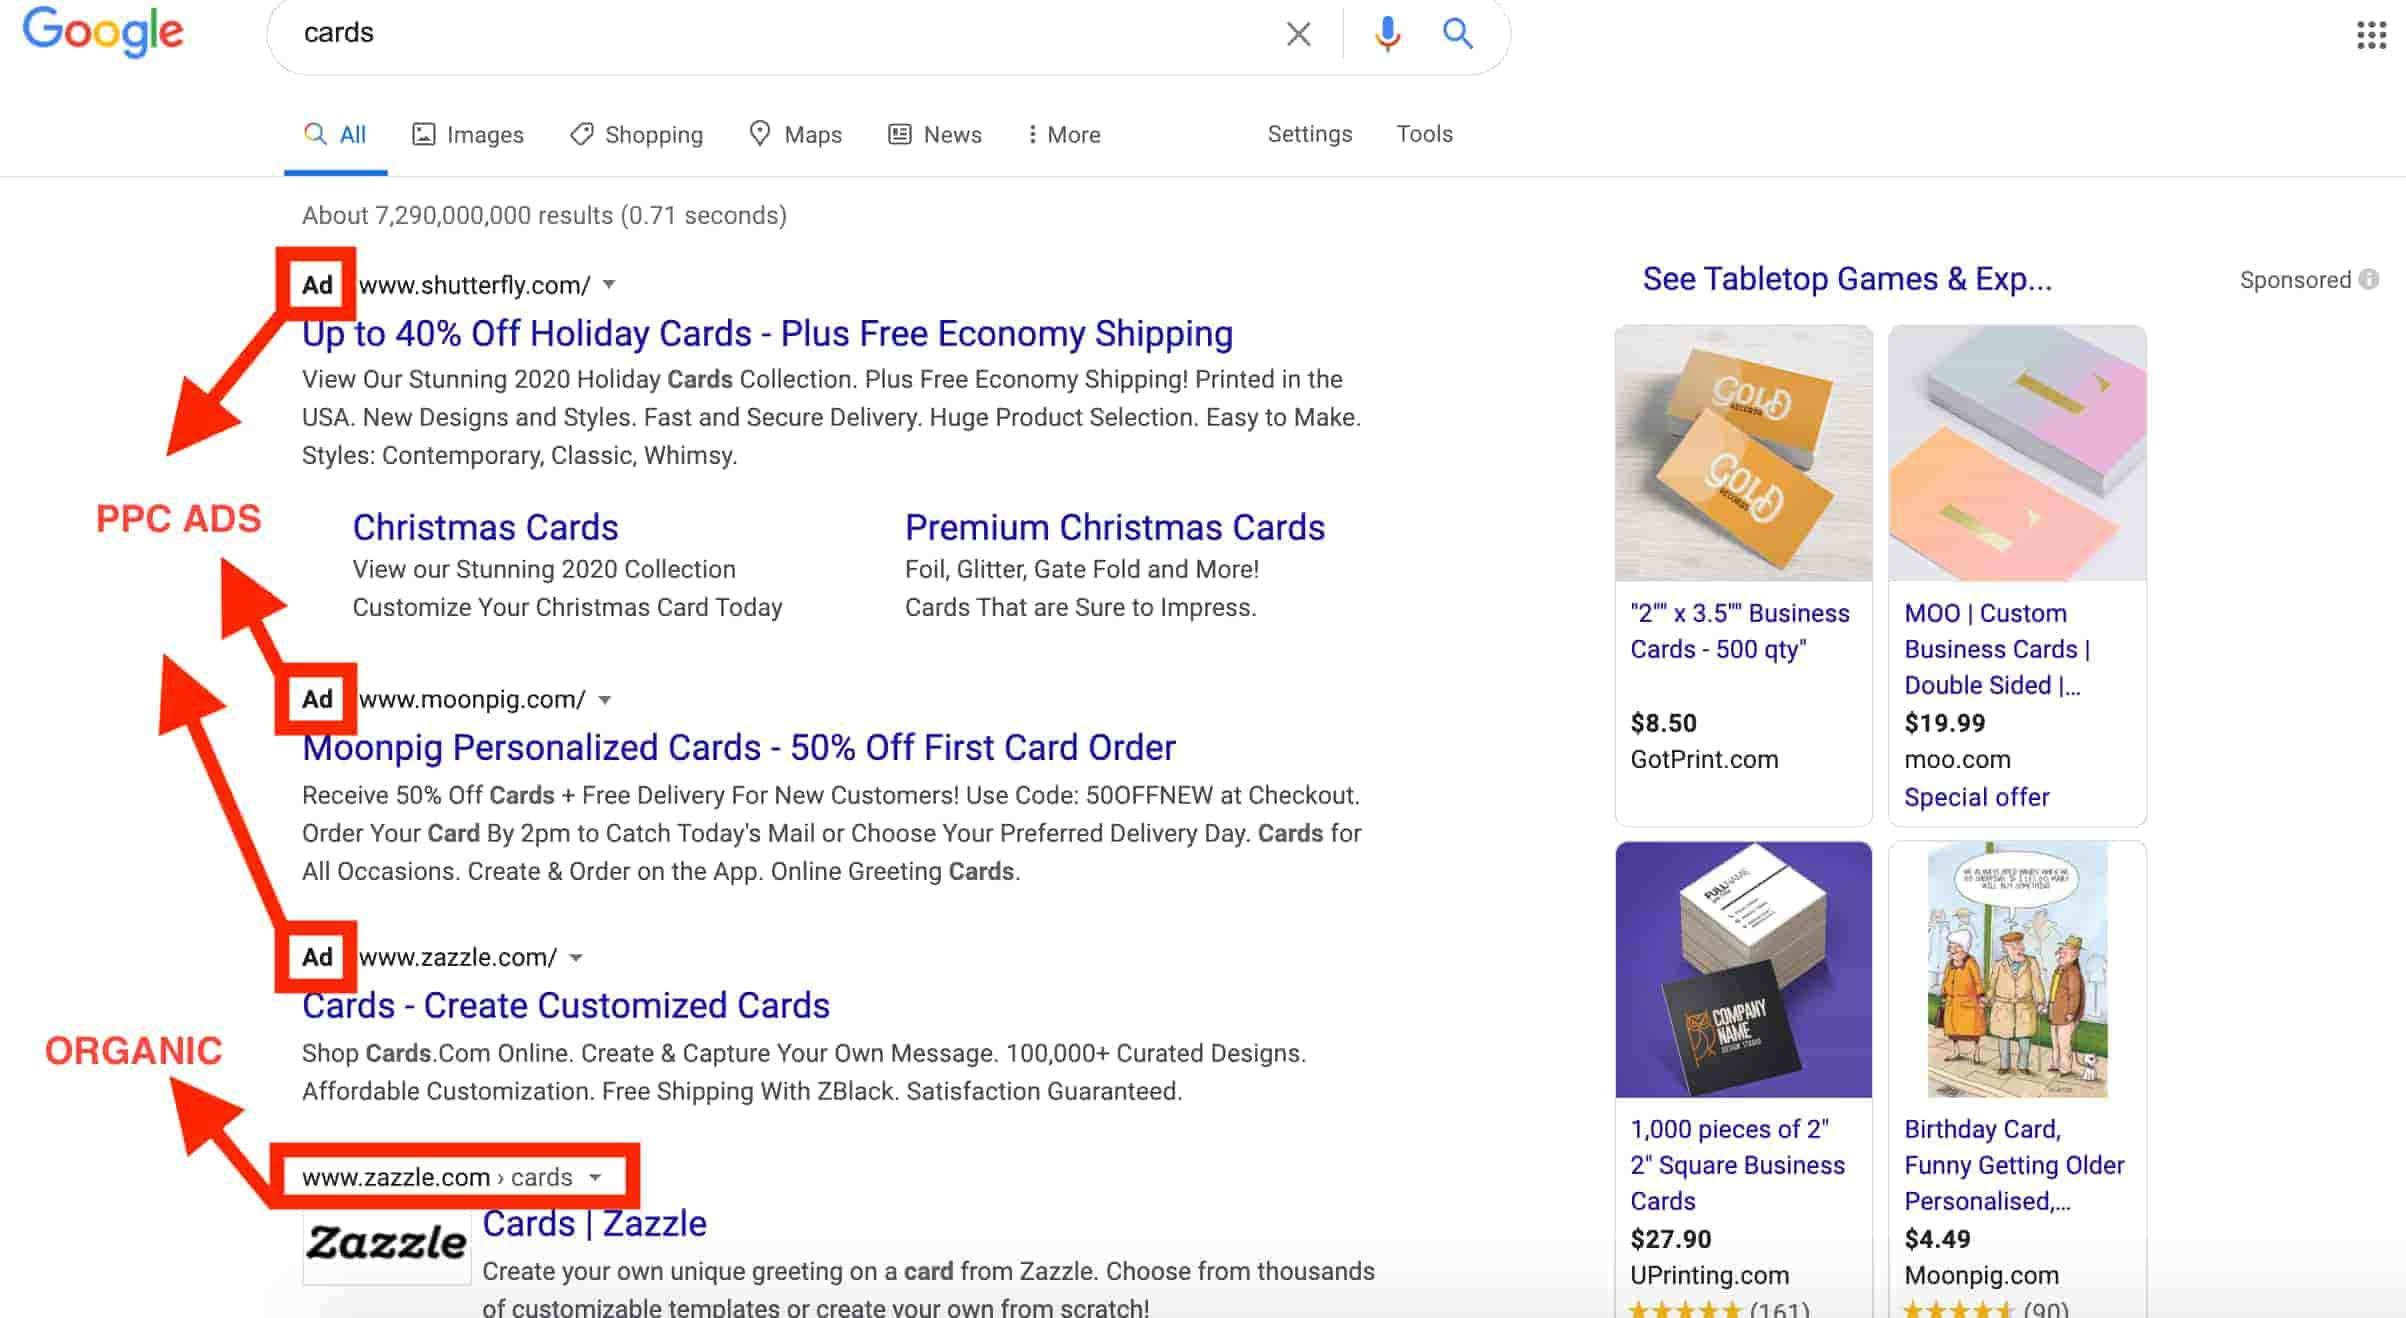 The Ultimate Guide to PPC